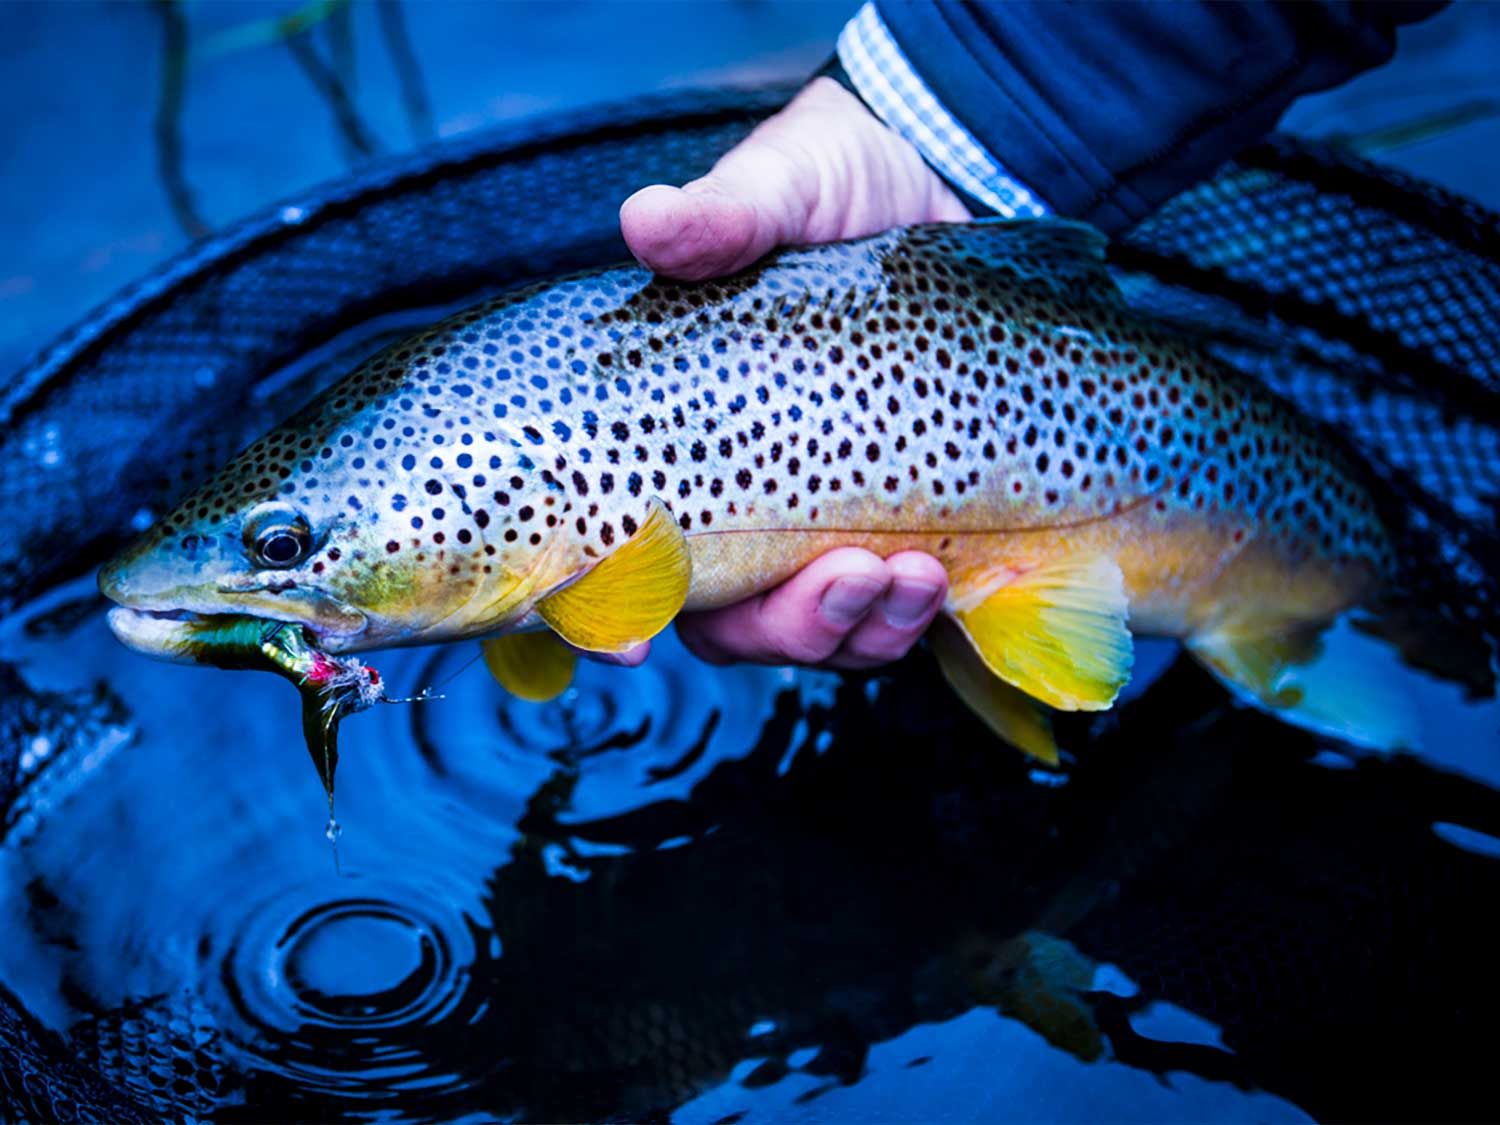 An angler holds a brown trout in his hand.